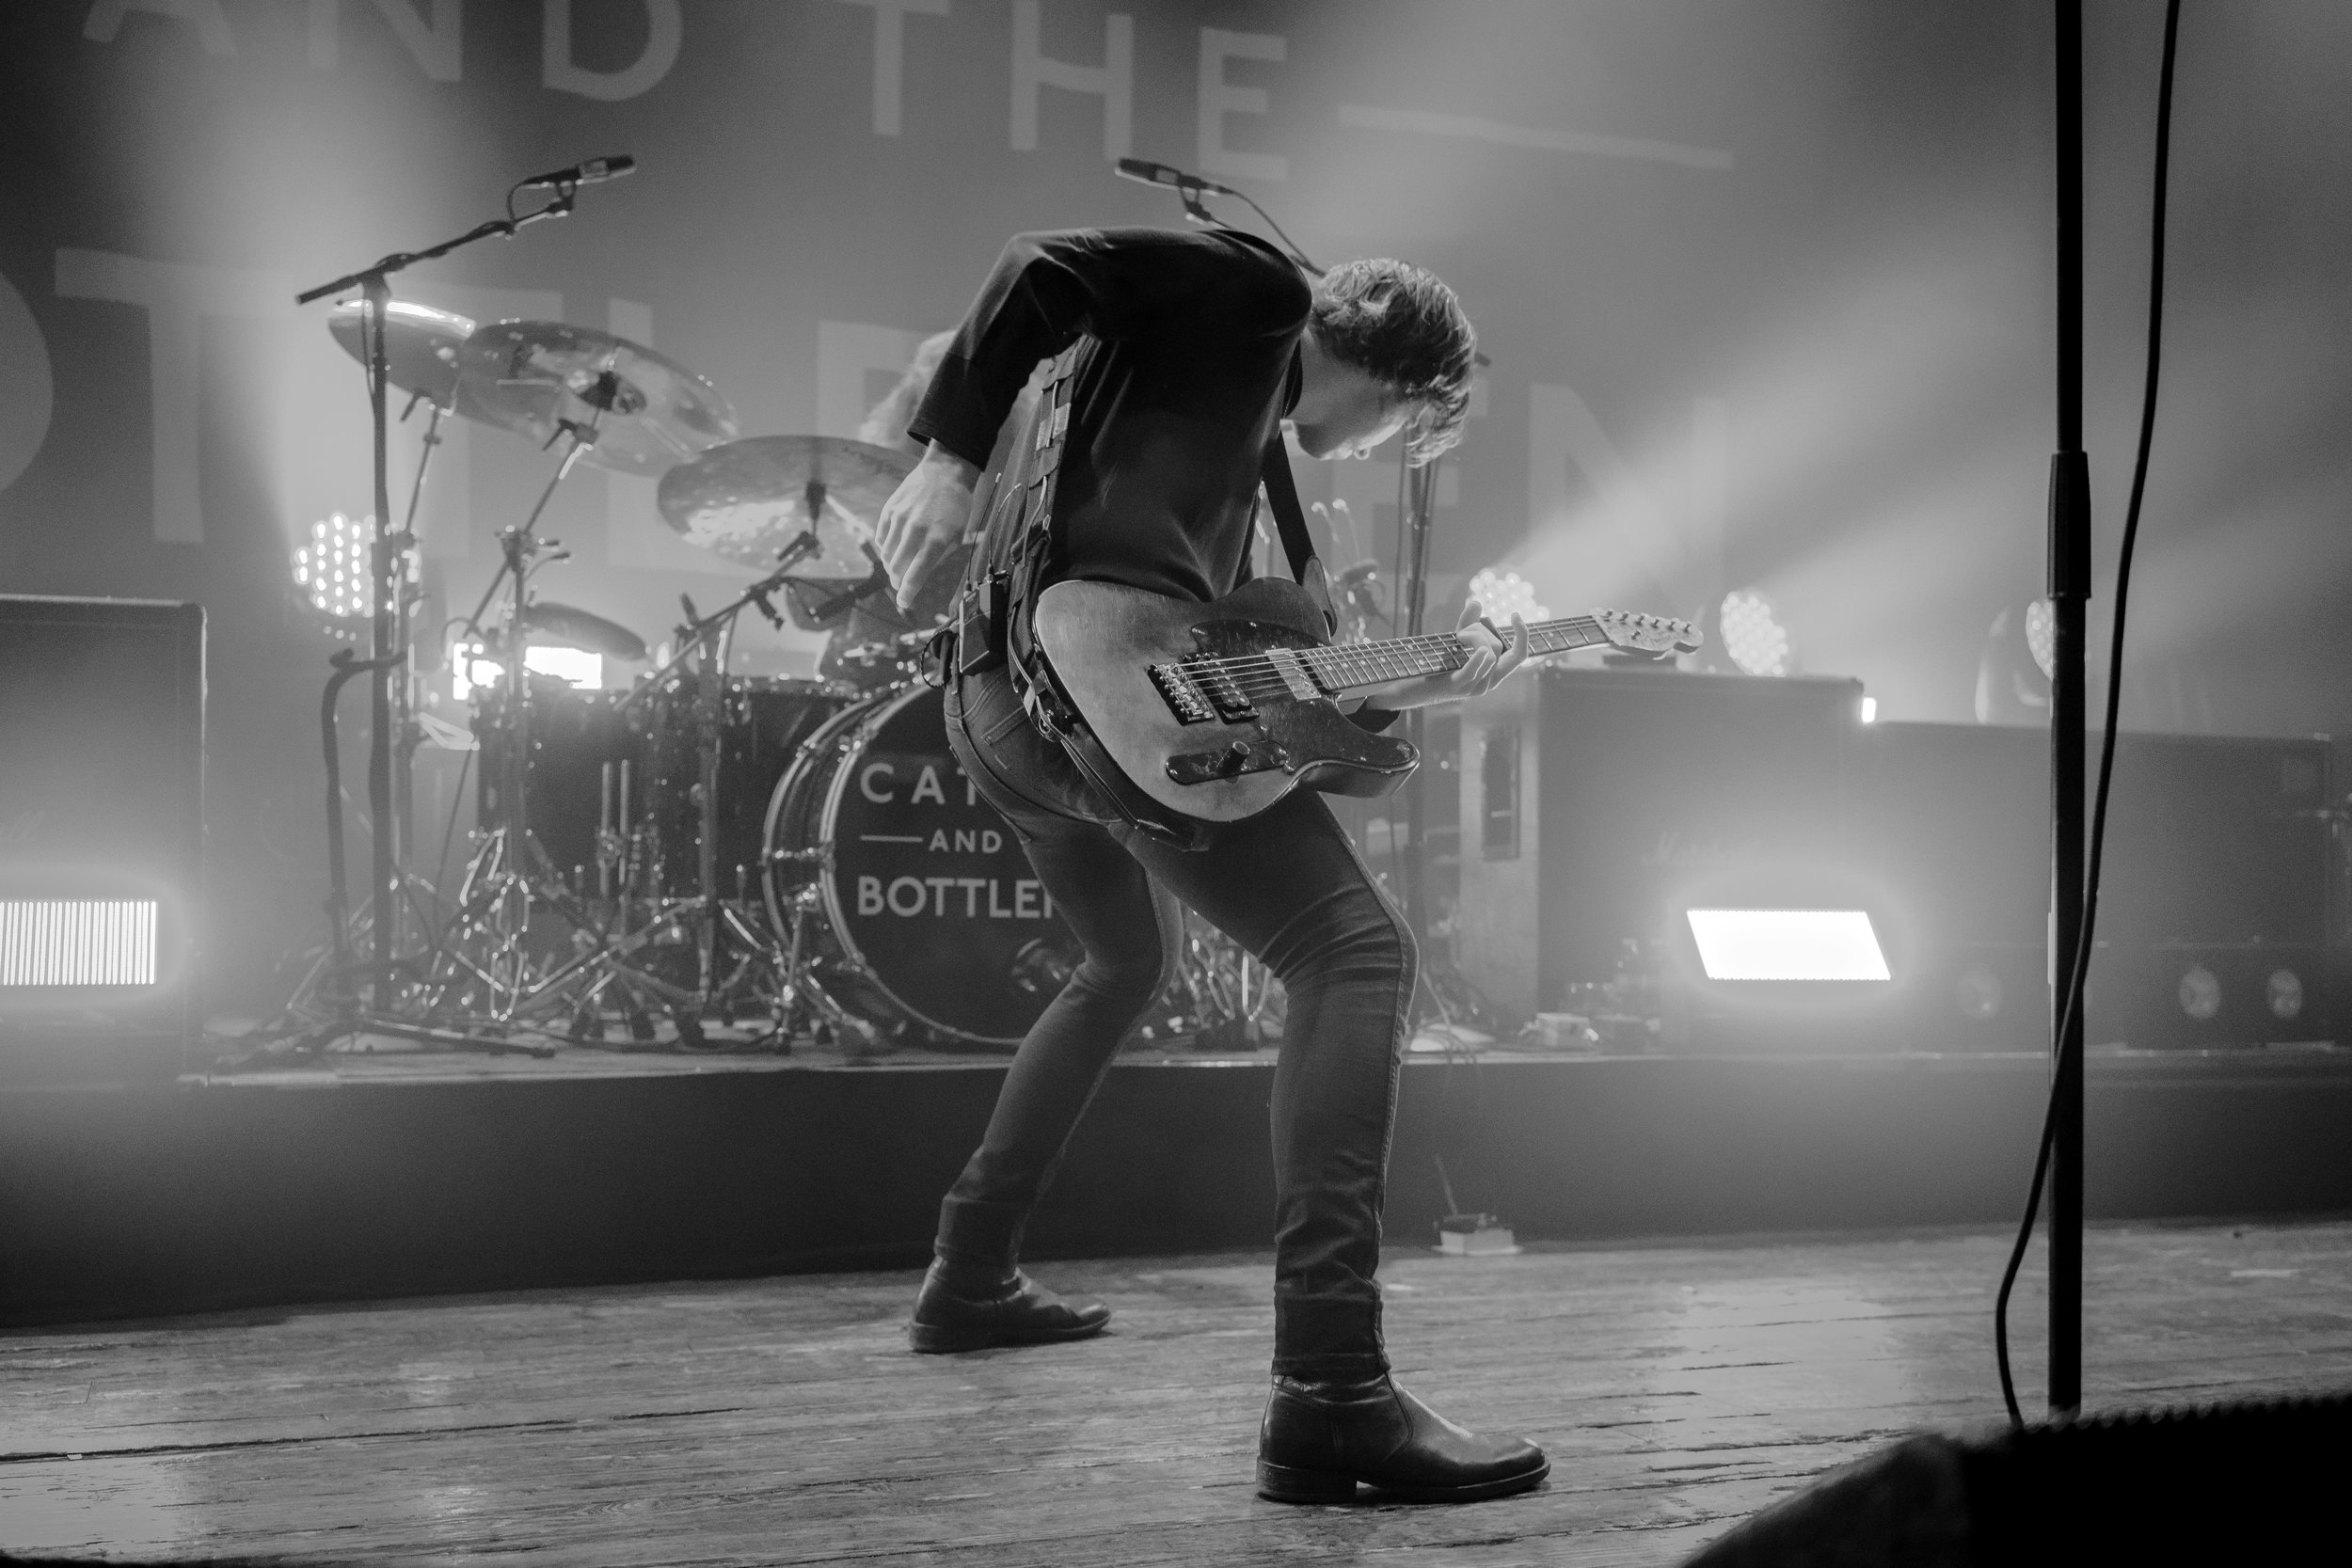 LOLLAPALOOZA AFTERSHOW: Catfish and the Bottlemen at House of Blues in Chicago, Illinois